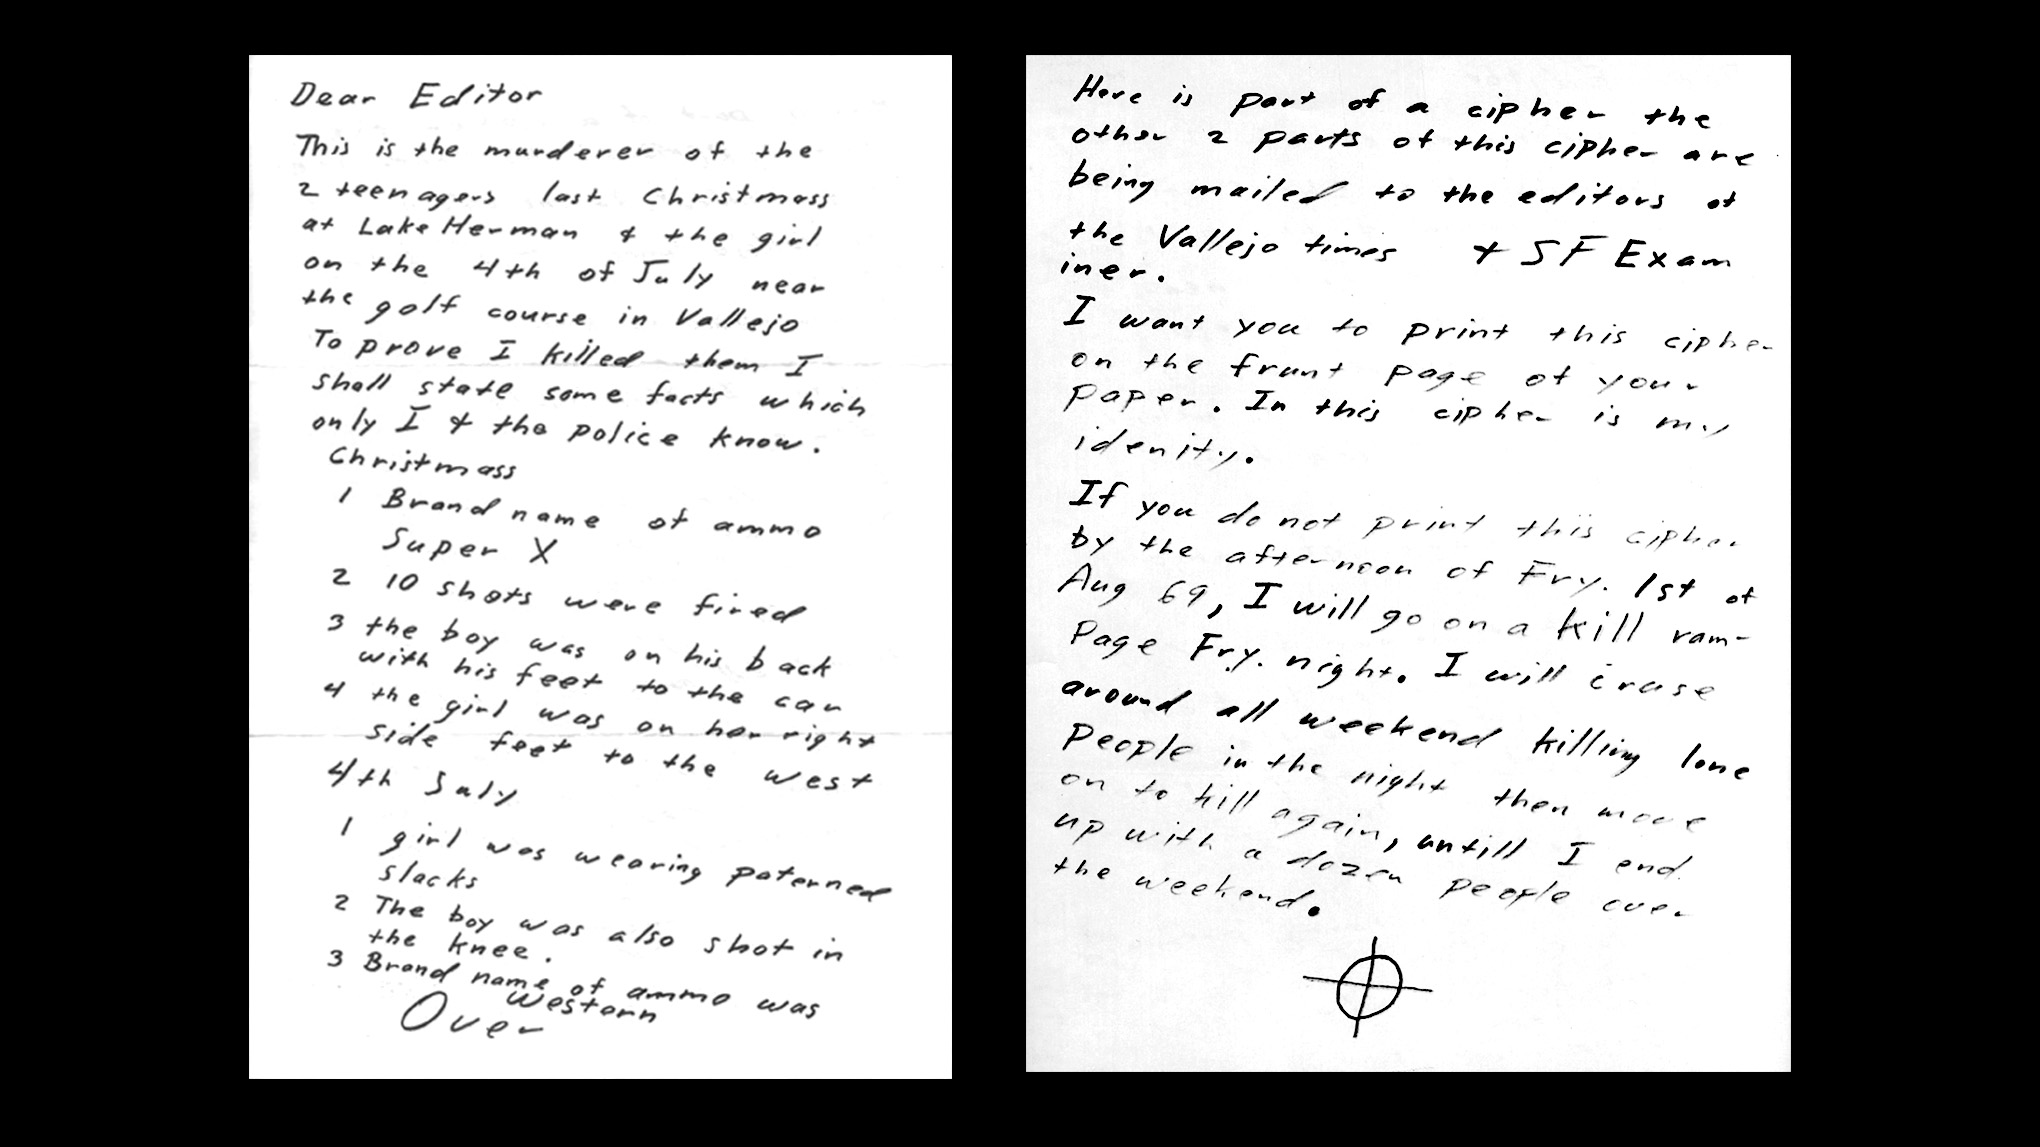 One Of Three Virtually Identical Letters Accompanied By One-Third Of A  Cipher. The Writer Demanded Publication Of The Letters And Ciphers By  Friday,